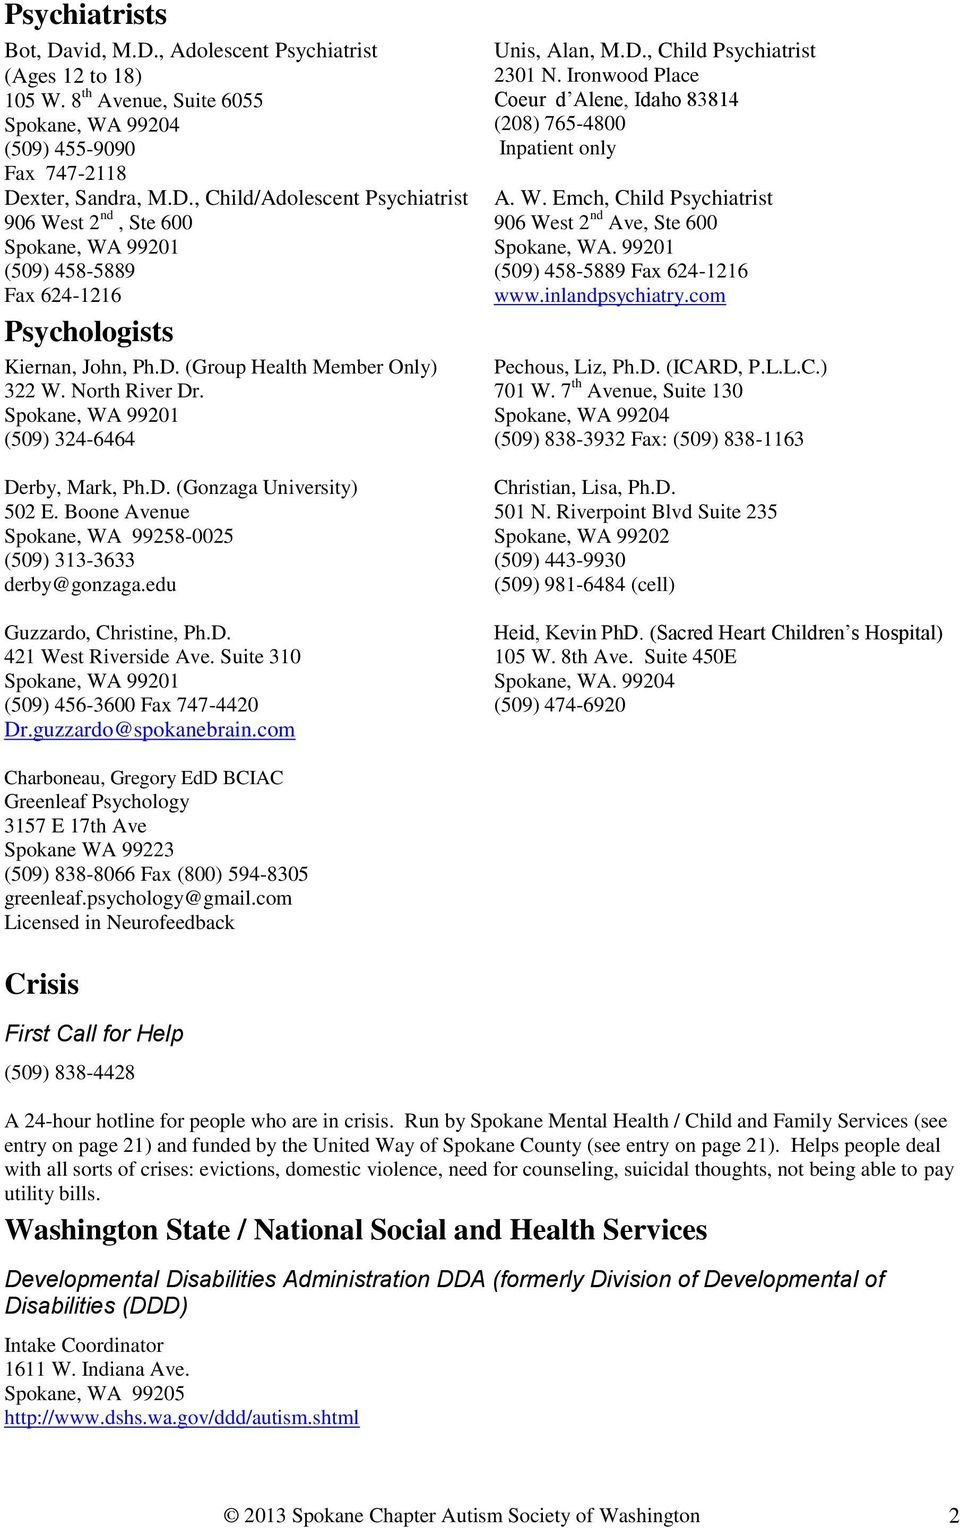 Autism Society Of Washington Spokane Chapter Resource Manual Pdf